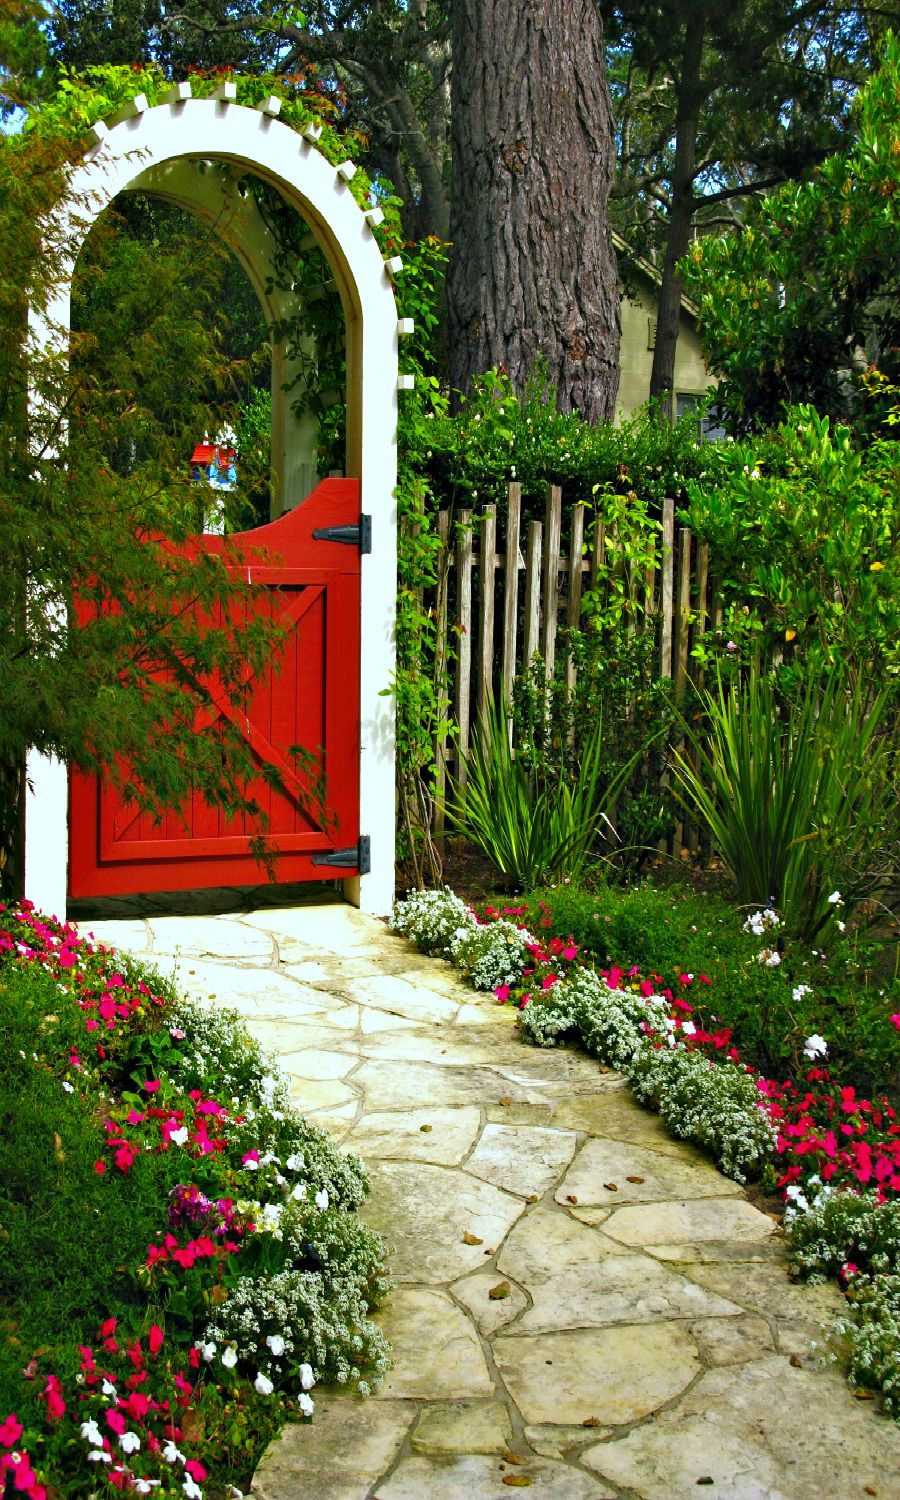 Colorful Entrance ~ Love The Idea Of Adding Color To The Traditional Garden  Gate!